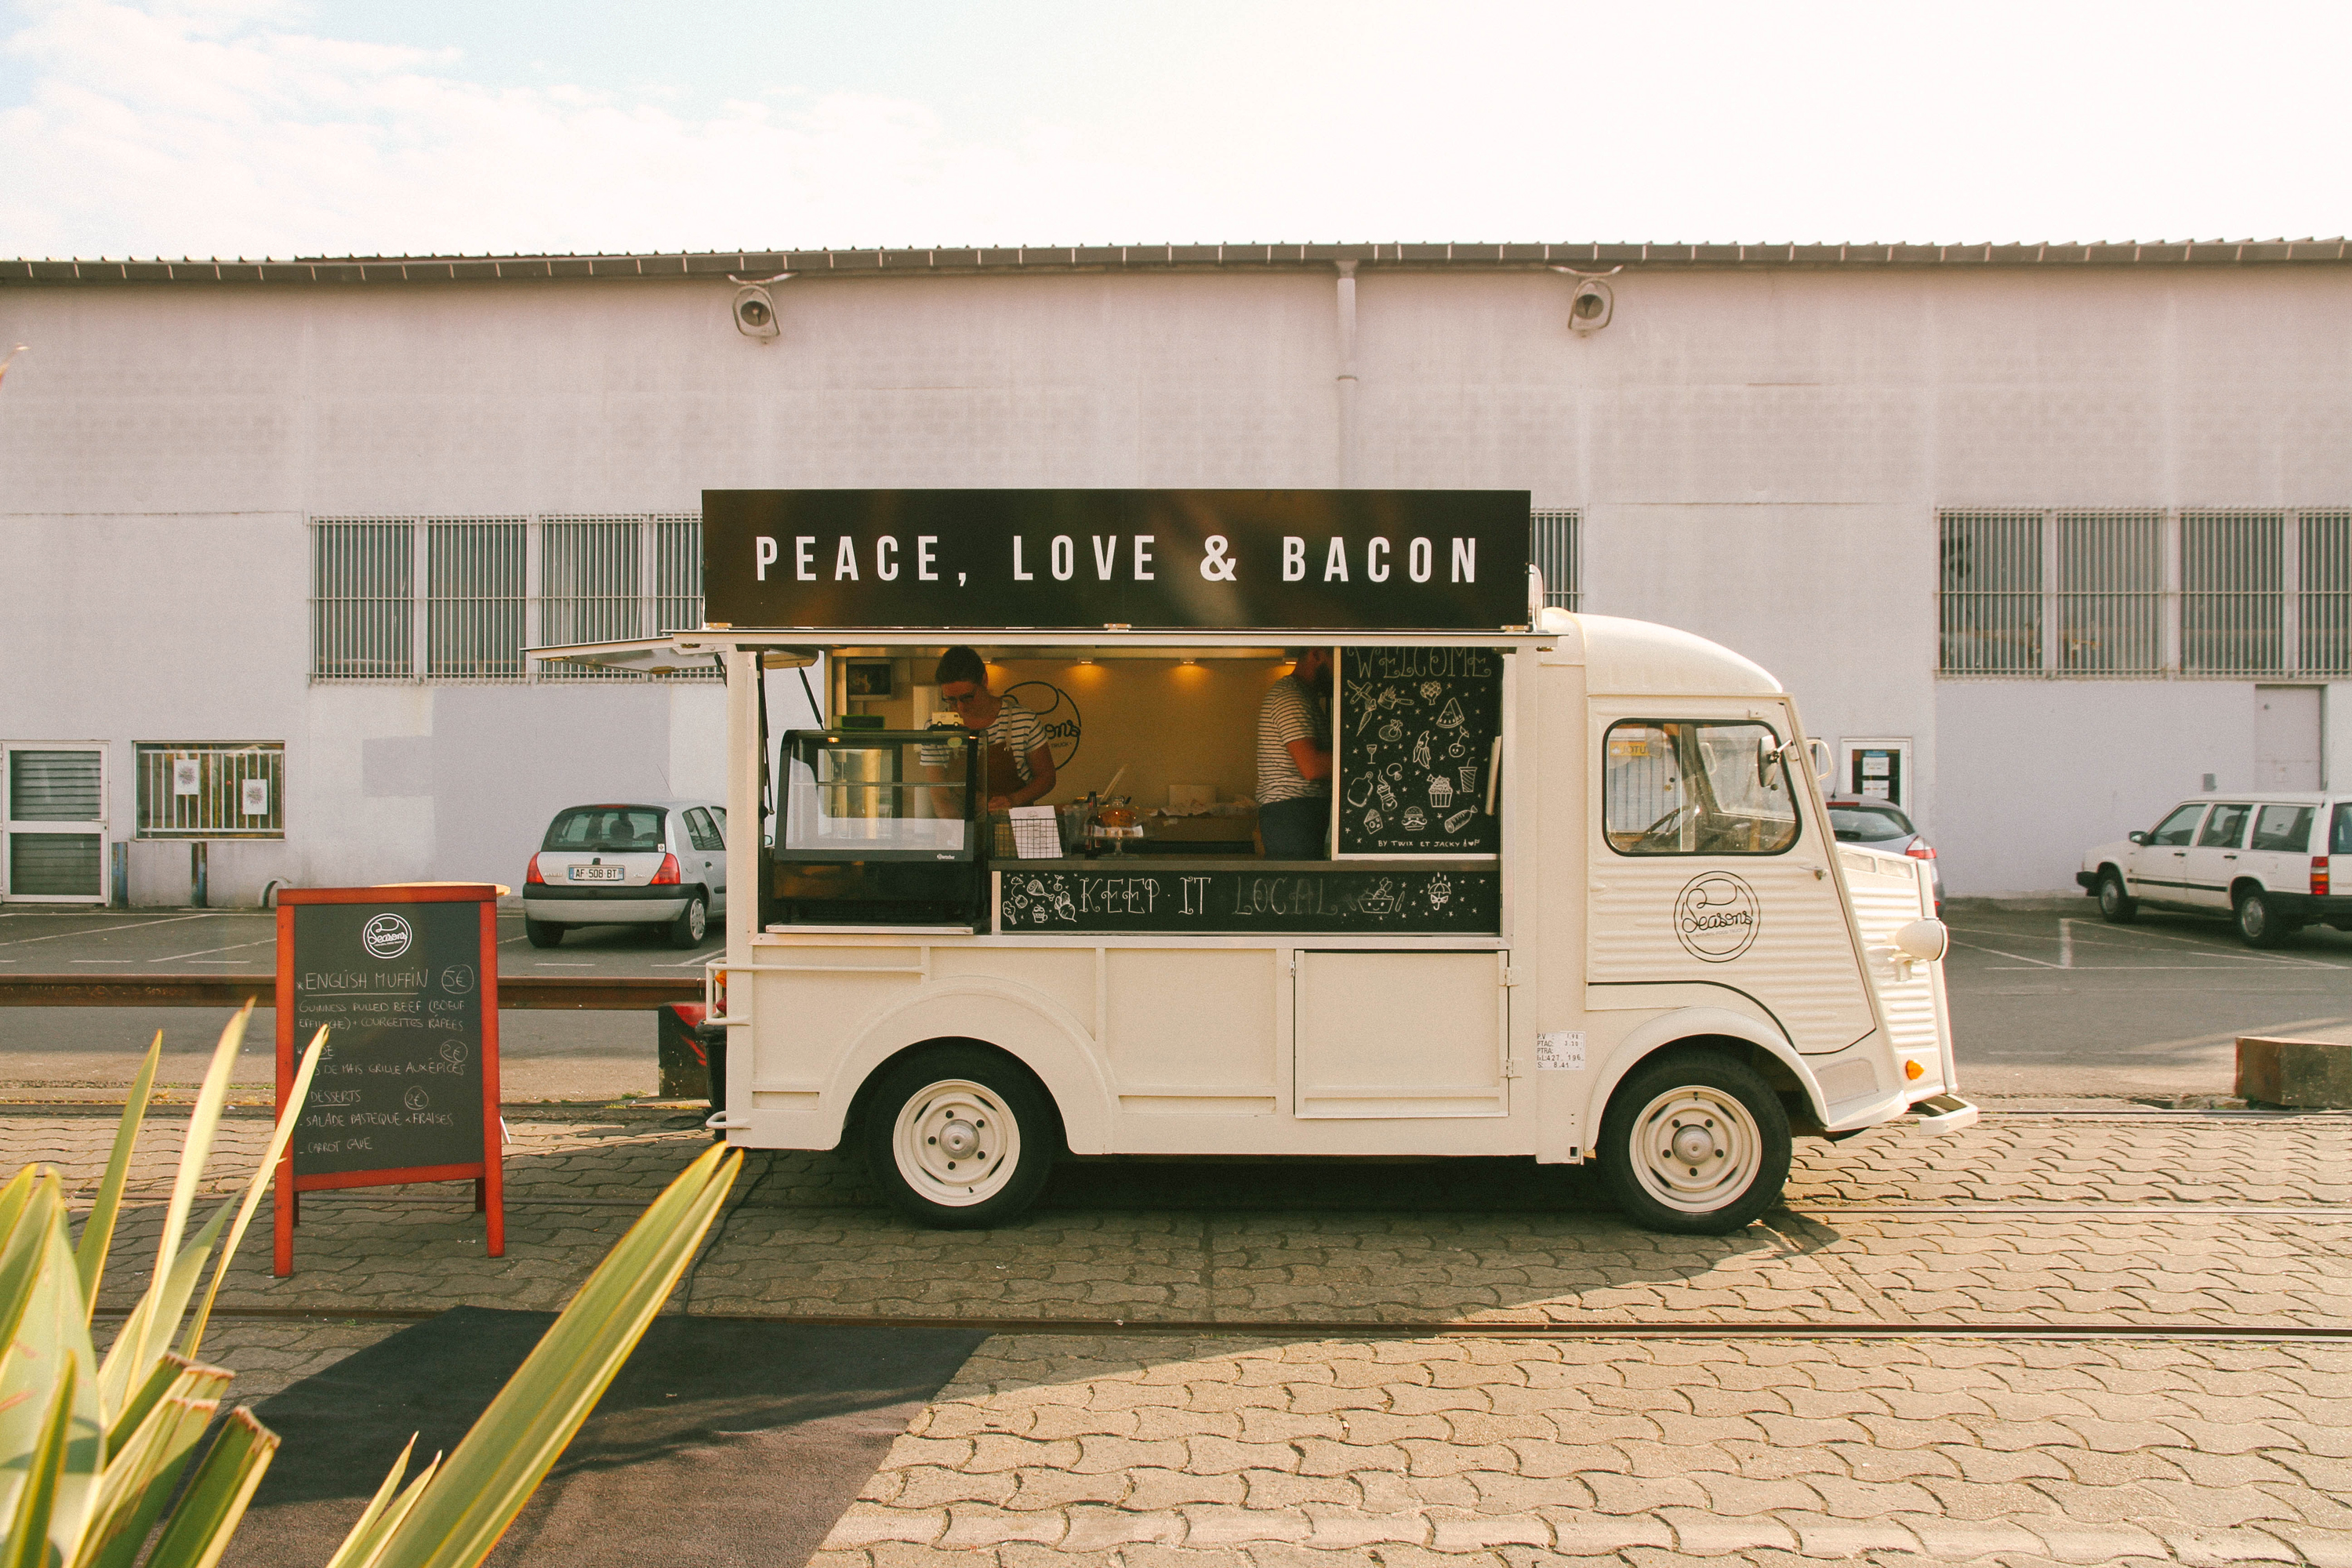 seasonsfoodtruck-seasons-food-truck-food truck-bordeaux-bordeauxmaville-visit bordeaux-event-lababineau-iboat- food photographer-events photographer-8